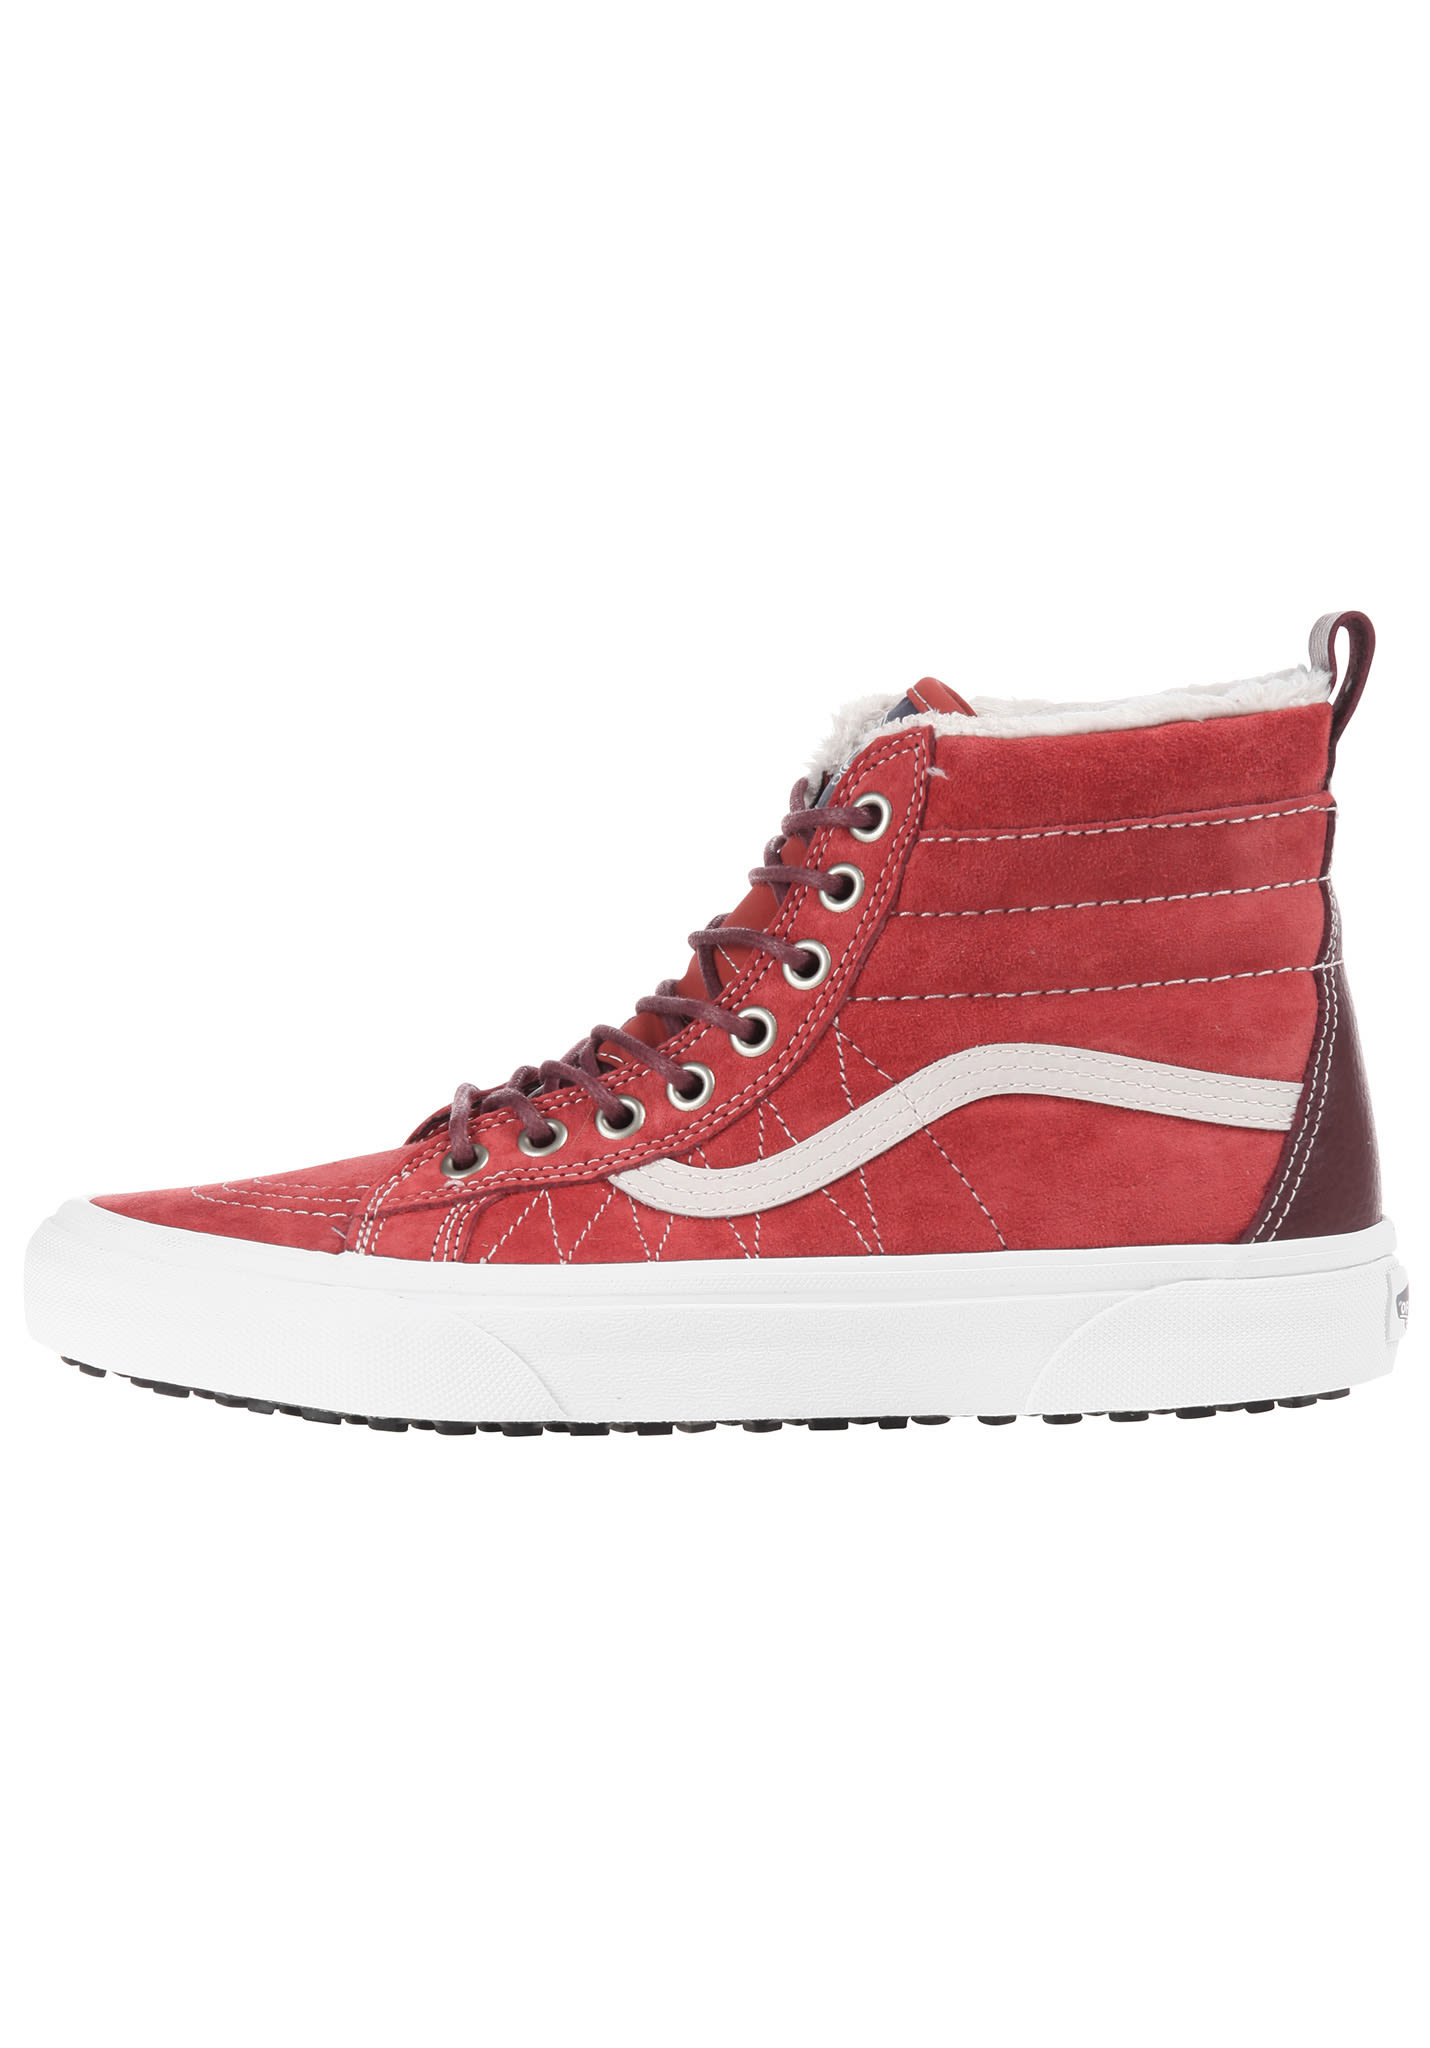 Hi Mte Sk8 Red Vans Sneakers wm8ynOvN0